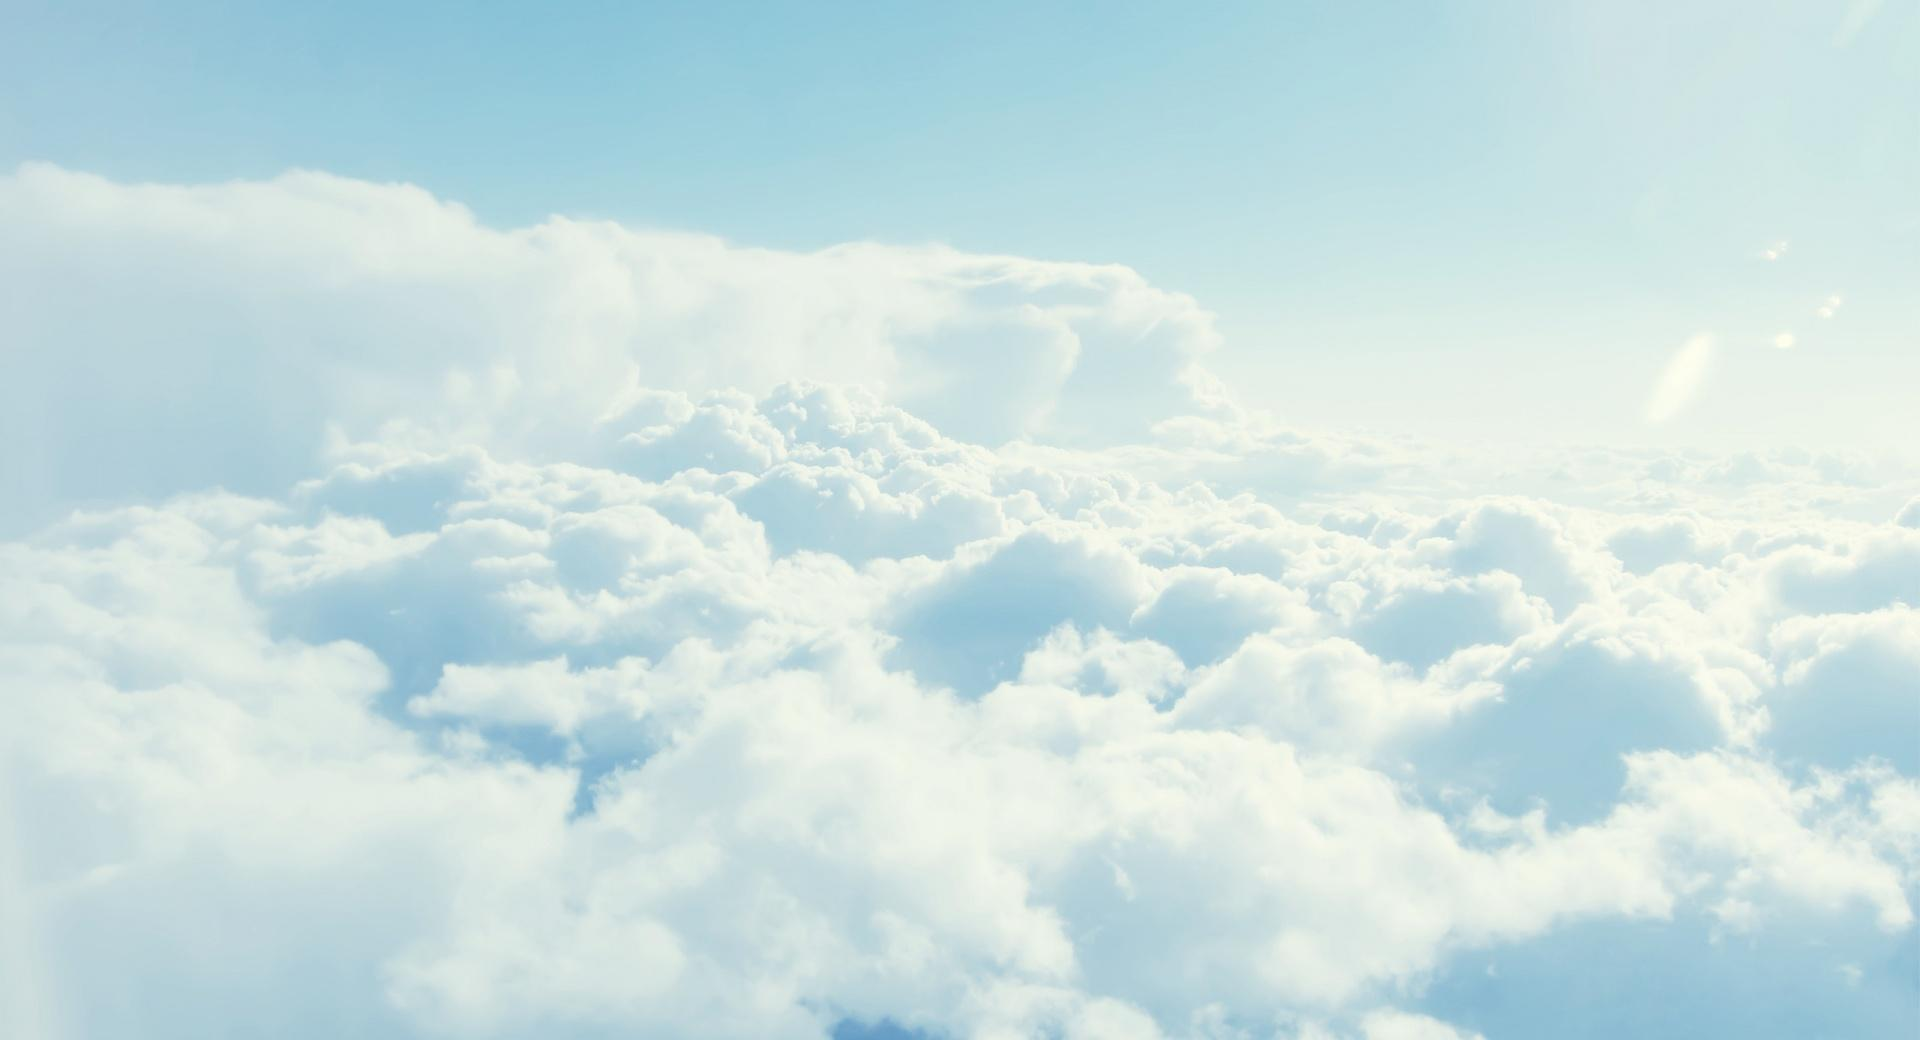 Above The Clouds wallpapers HD quality